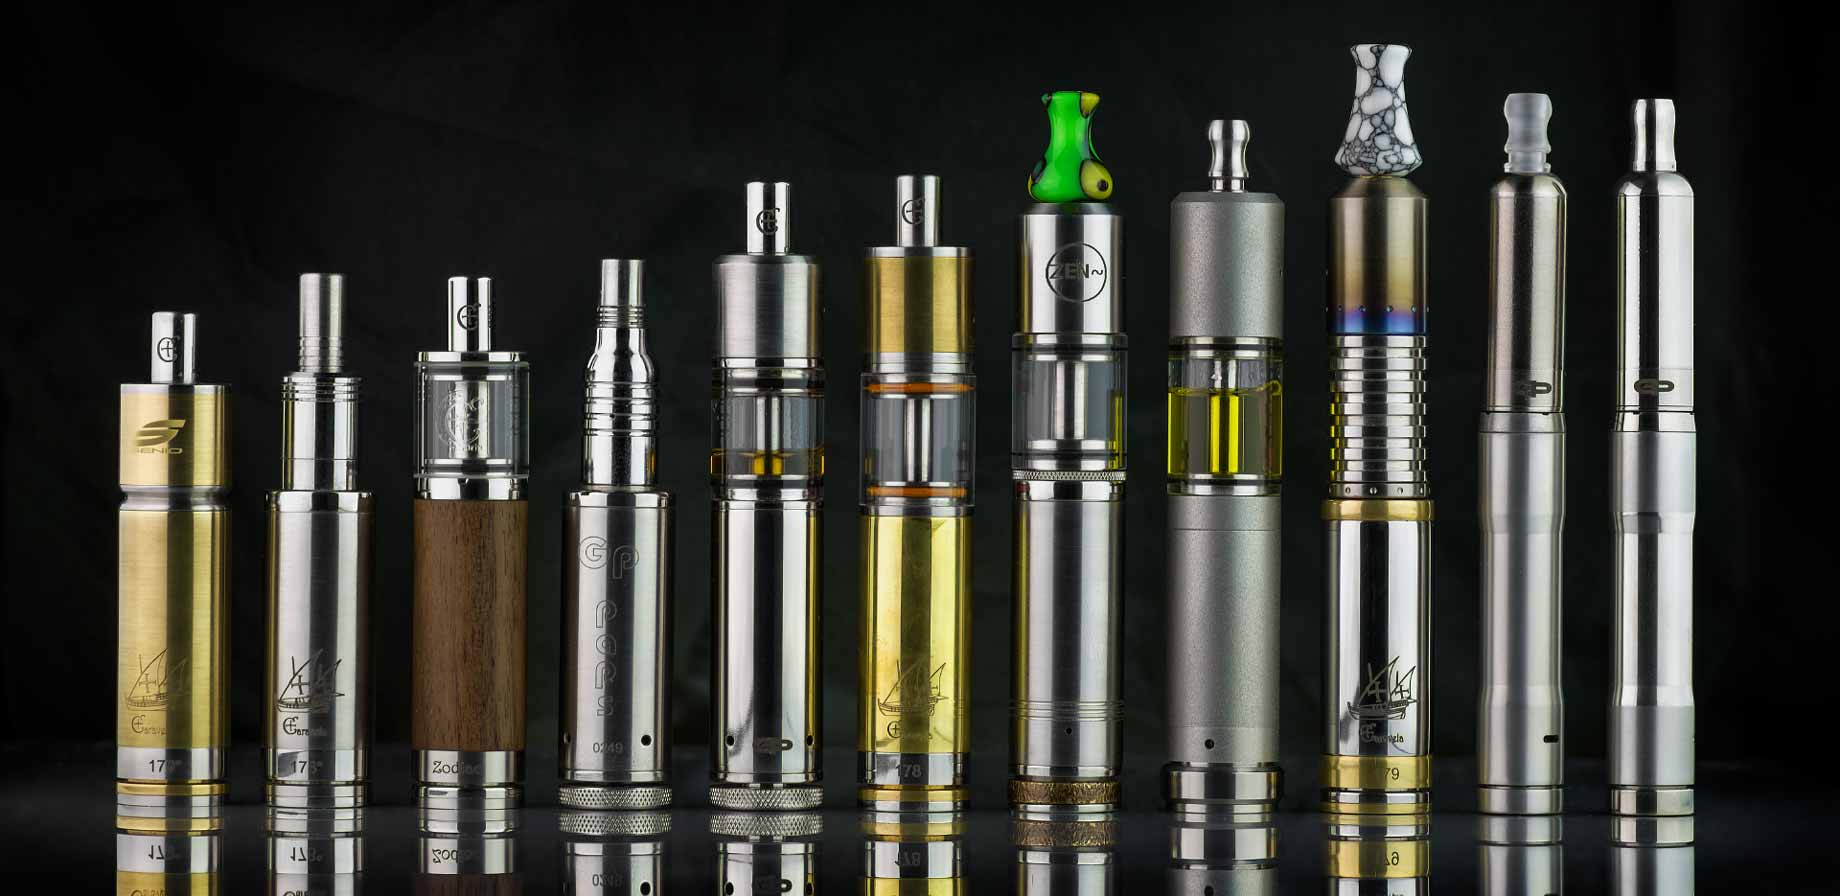 Collection de mods de marque Caravela, GP Paps, Piccolo, Spheroid, JM22, Senio, ZEN, Diablo hybrid, Siam Mods et BullBox